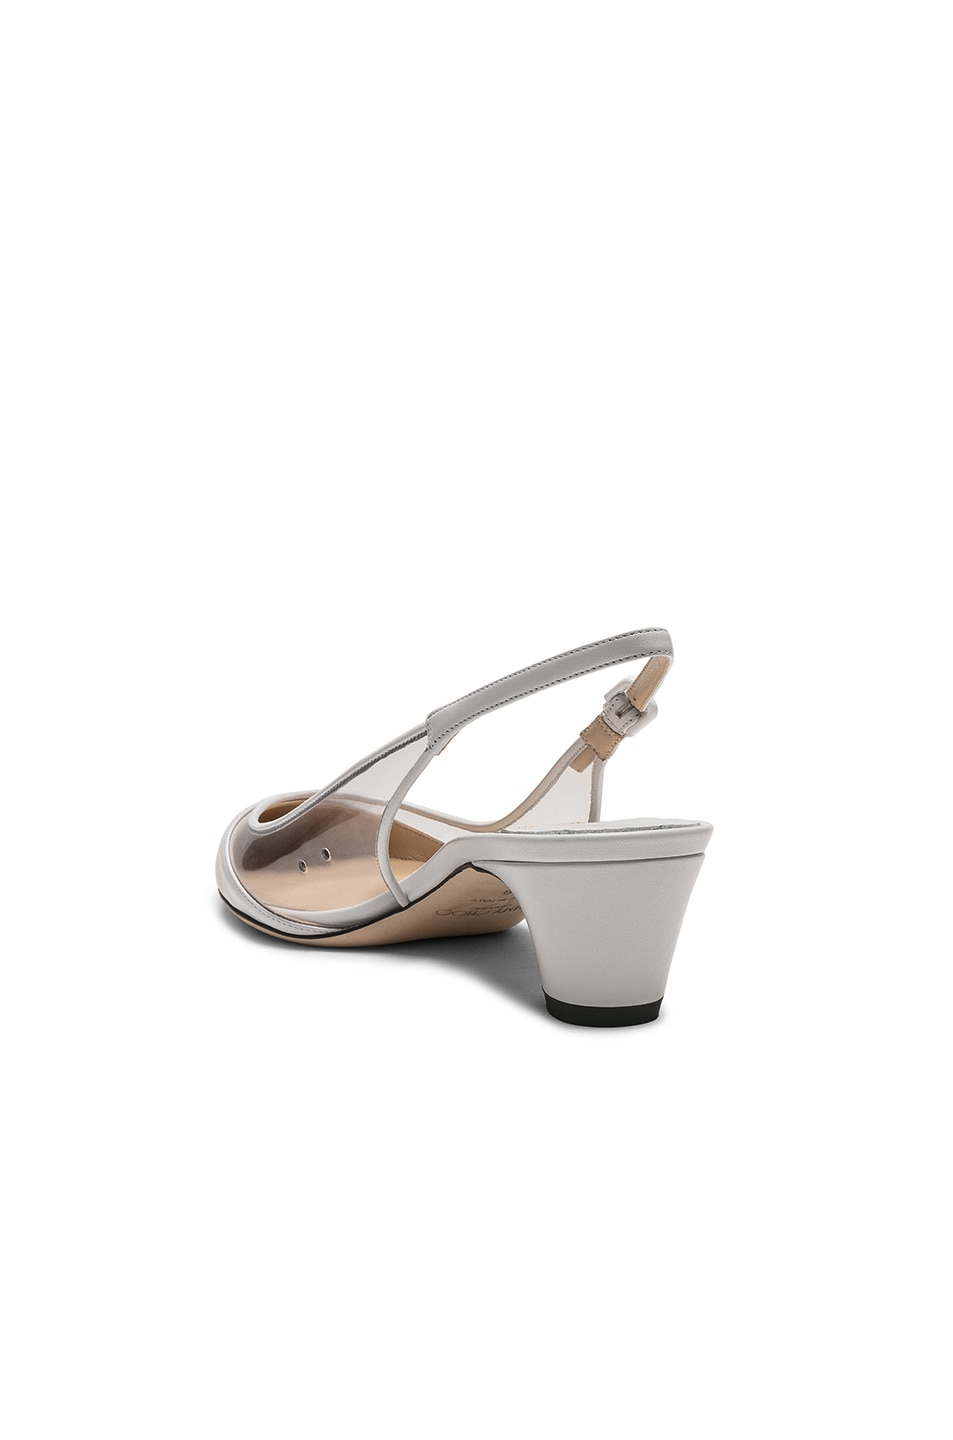 Image 3 of Jimmy Choo Gemma 40 Leather Plexi Slingback in White & Clear